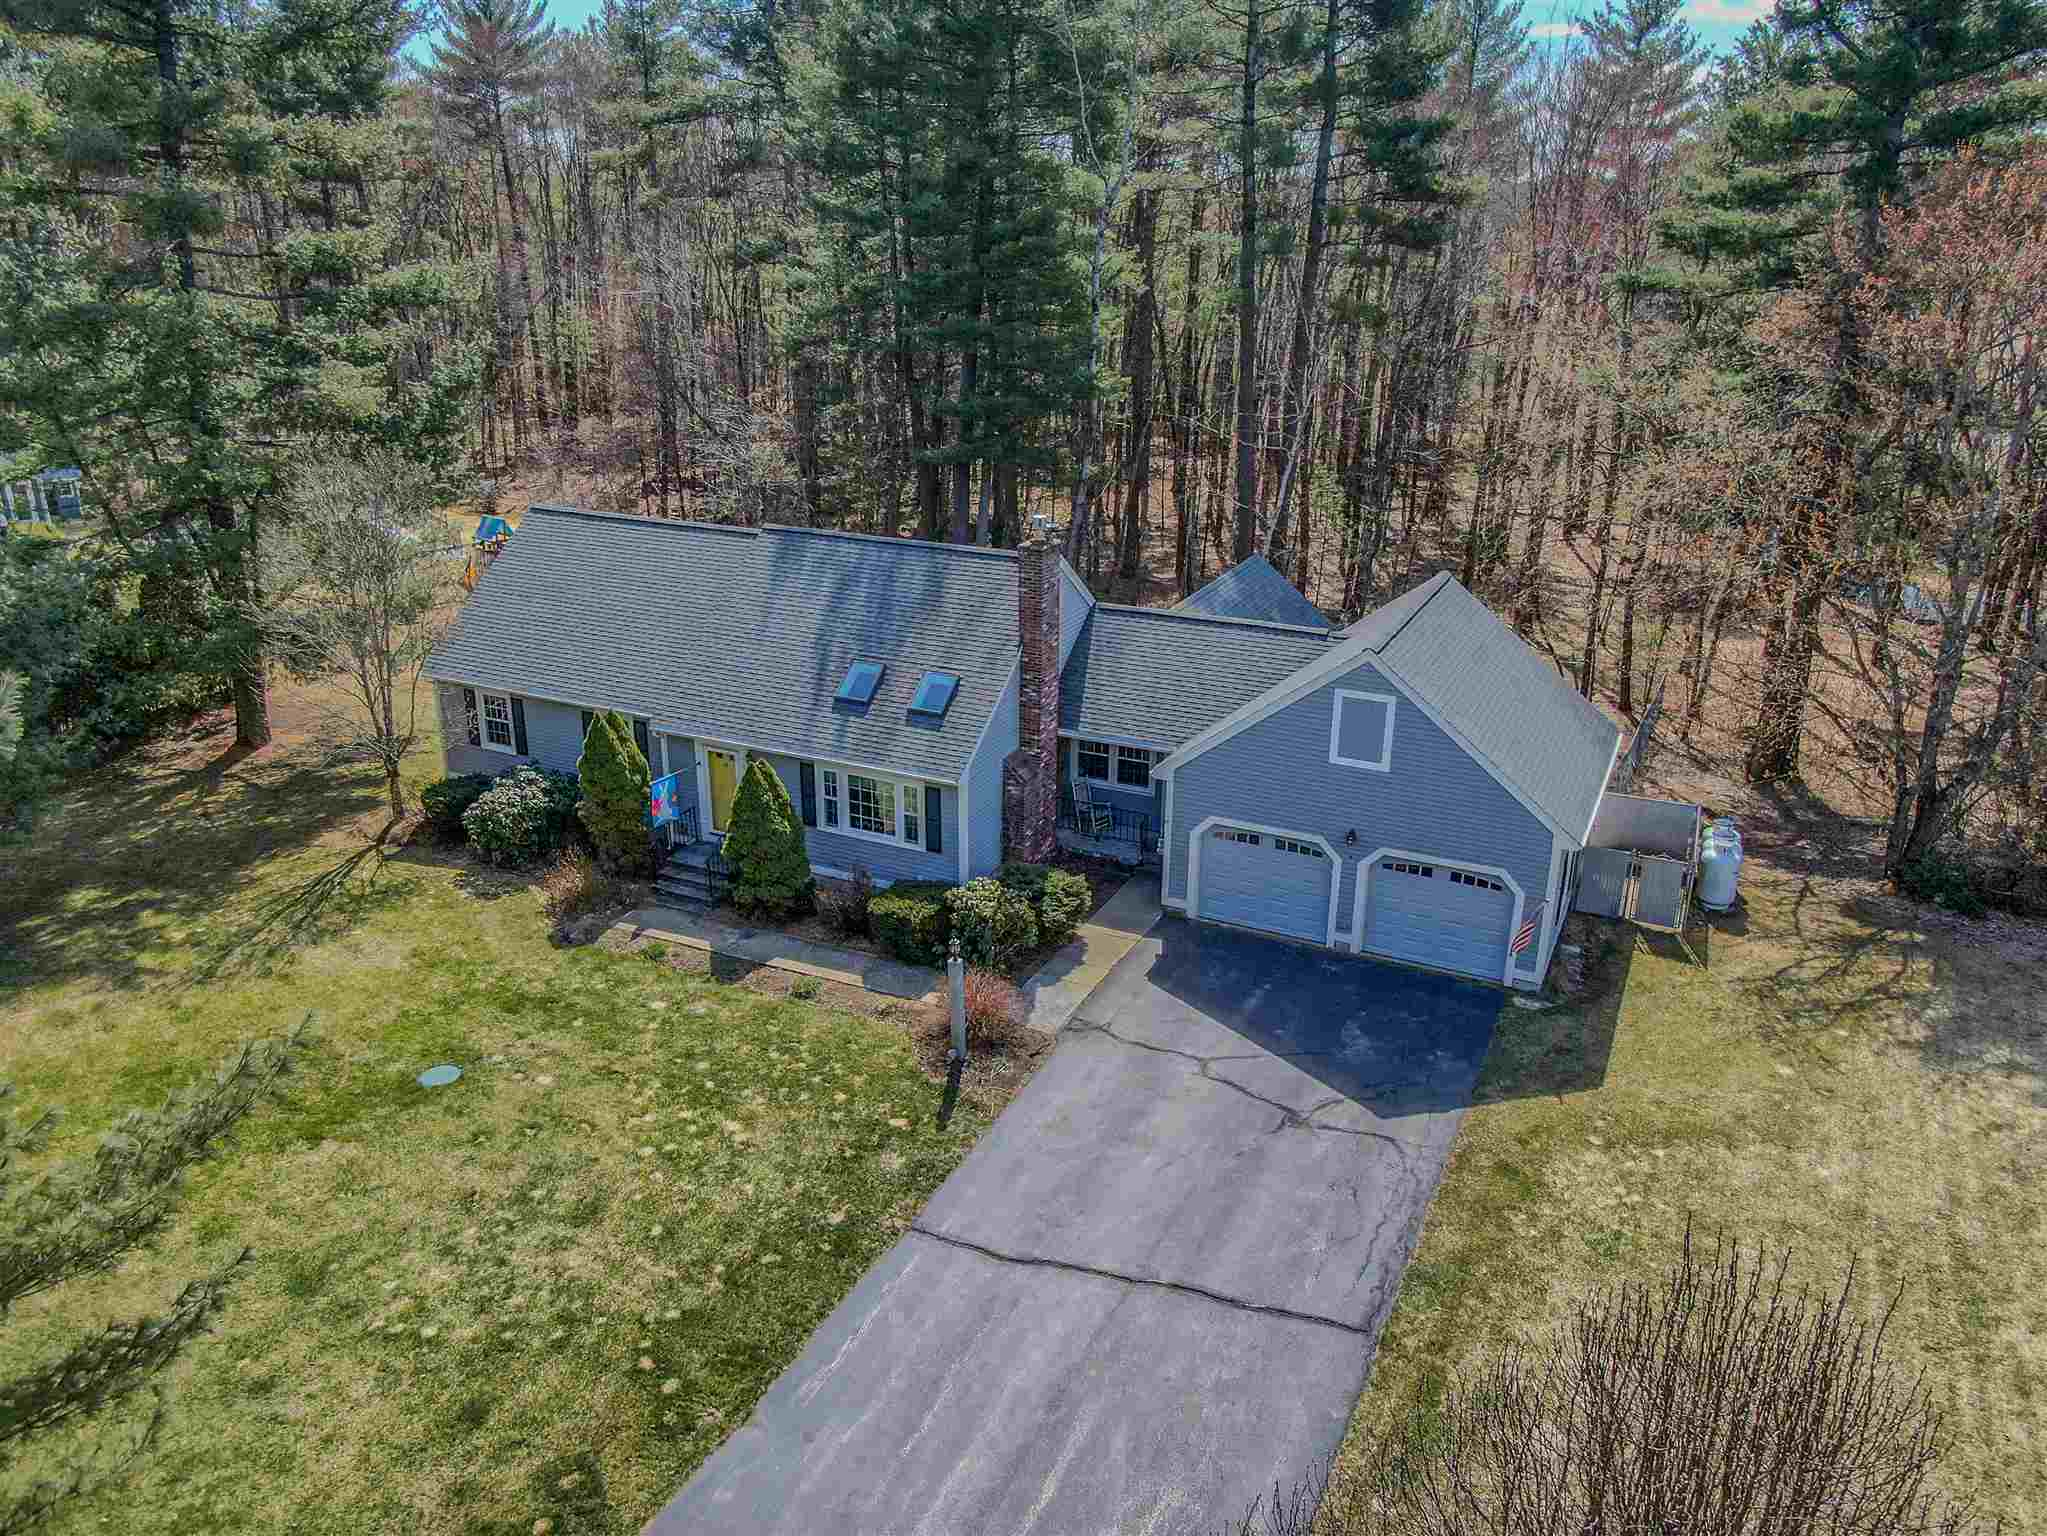 Photo of 21 Locke Mill Drive Litchfield NH 03052